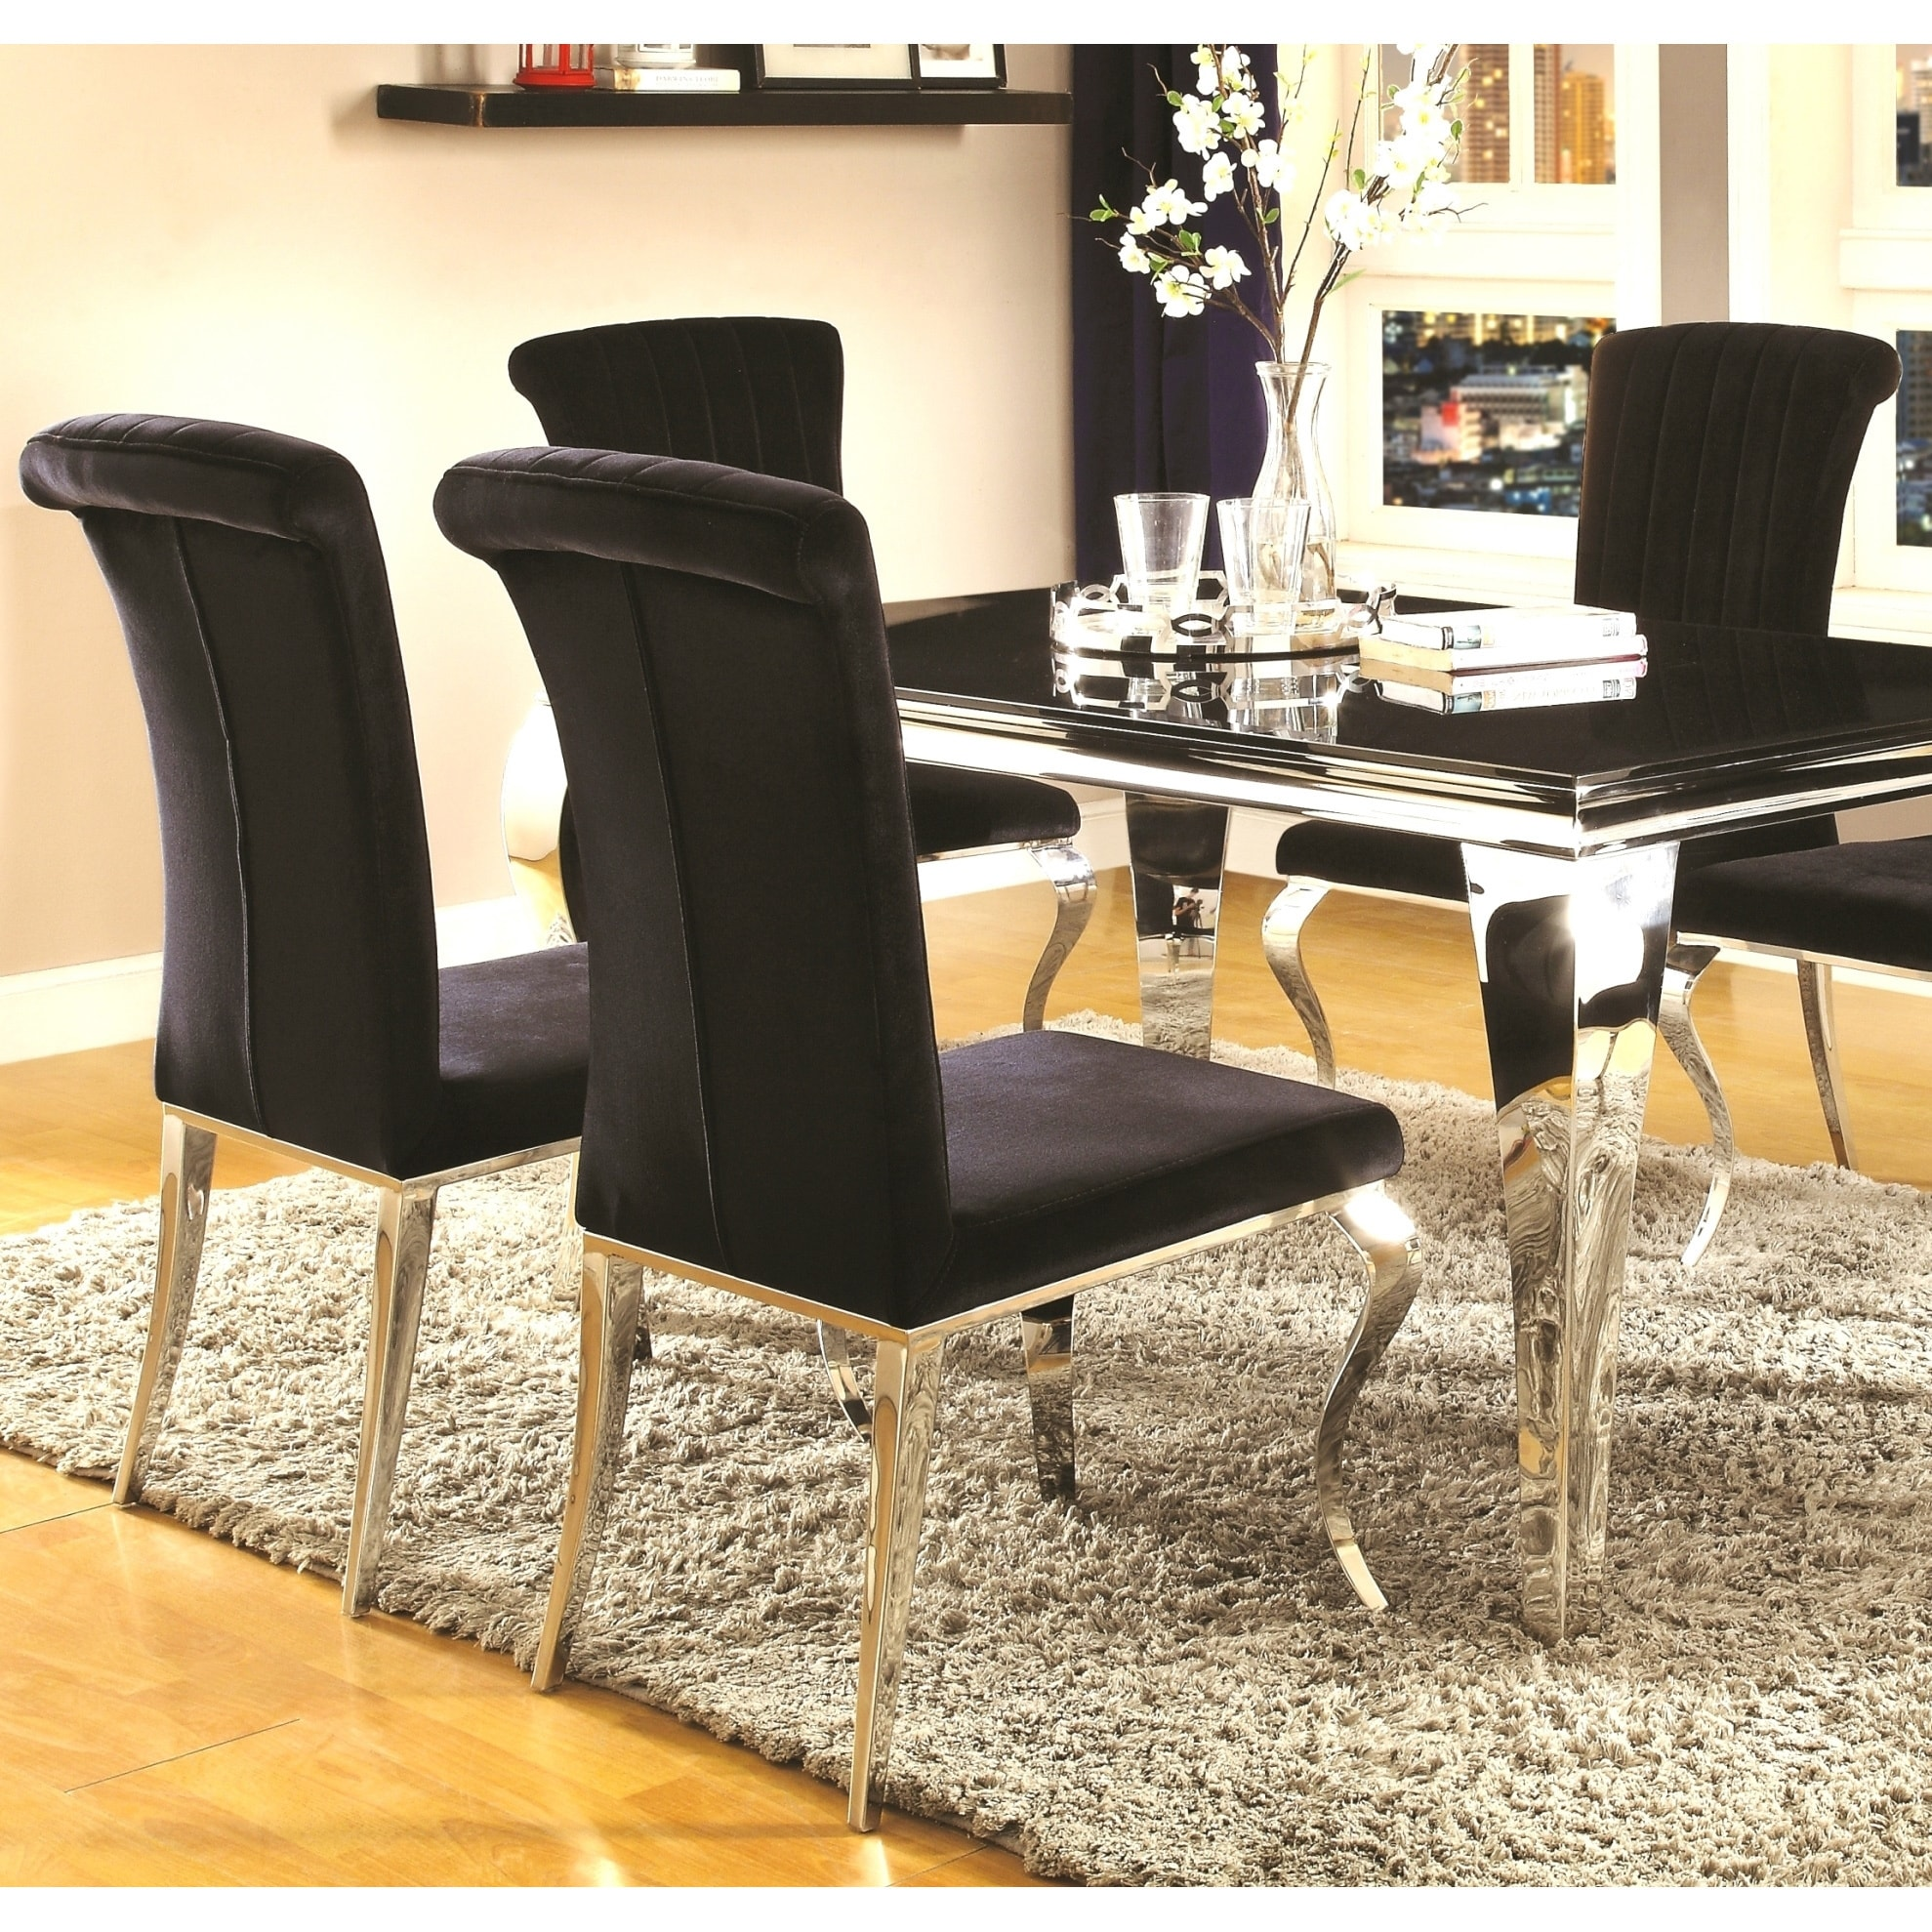 Cabriole Design Stainless Steel With Black Tempered Gl Dining Set Free Shipping Today 14393958